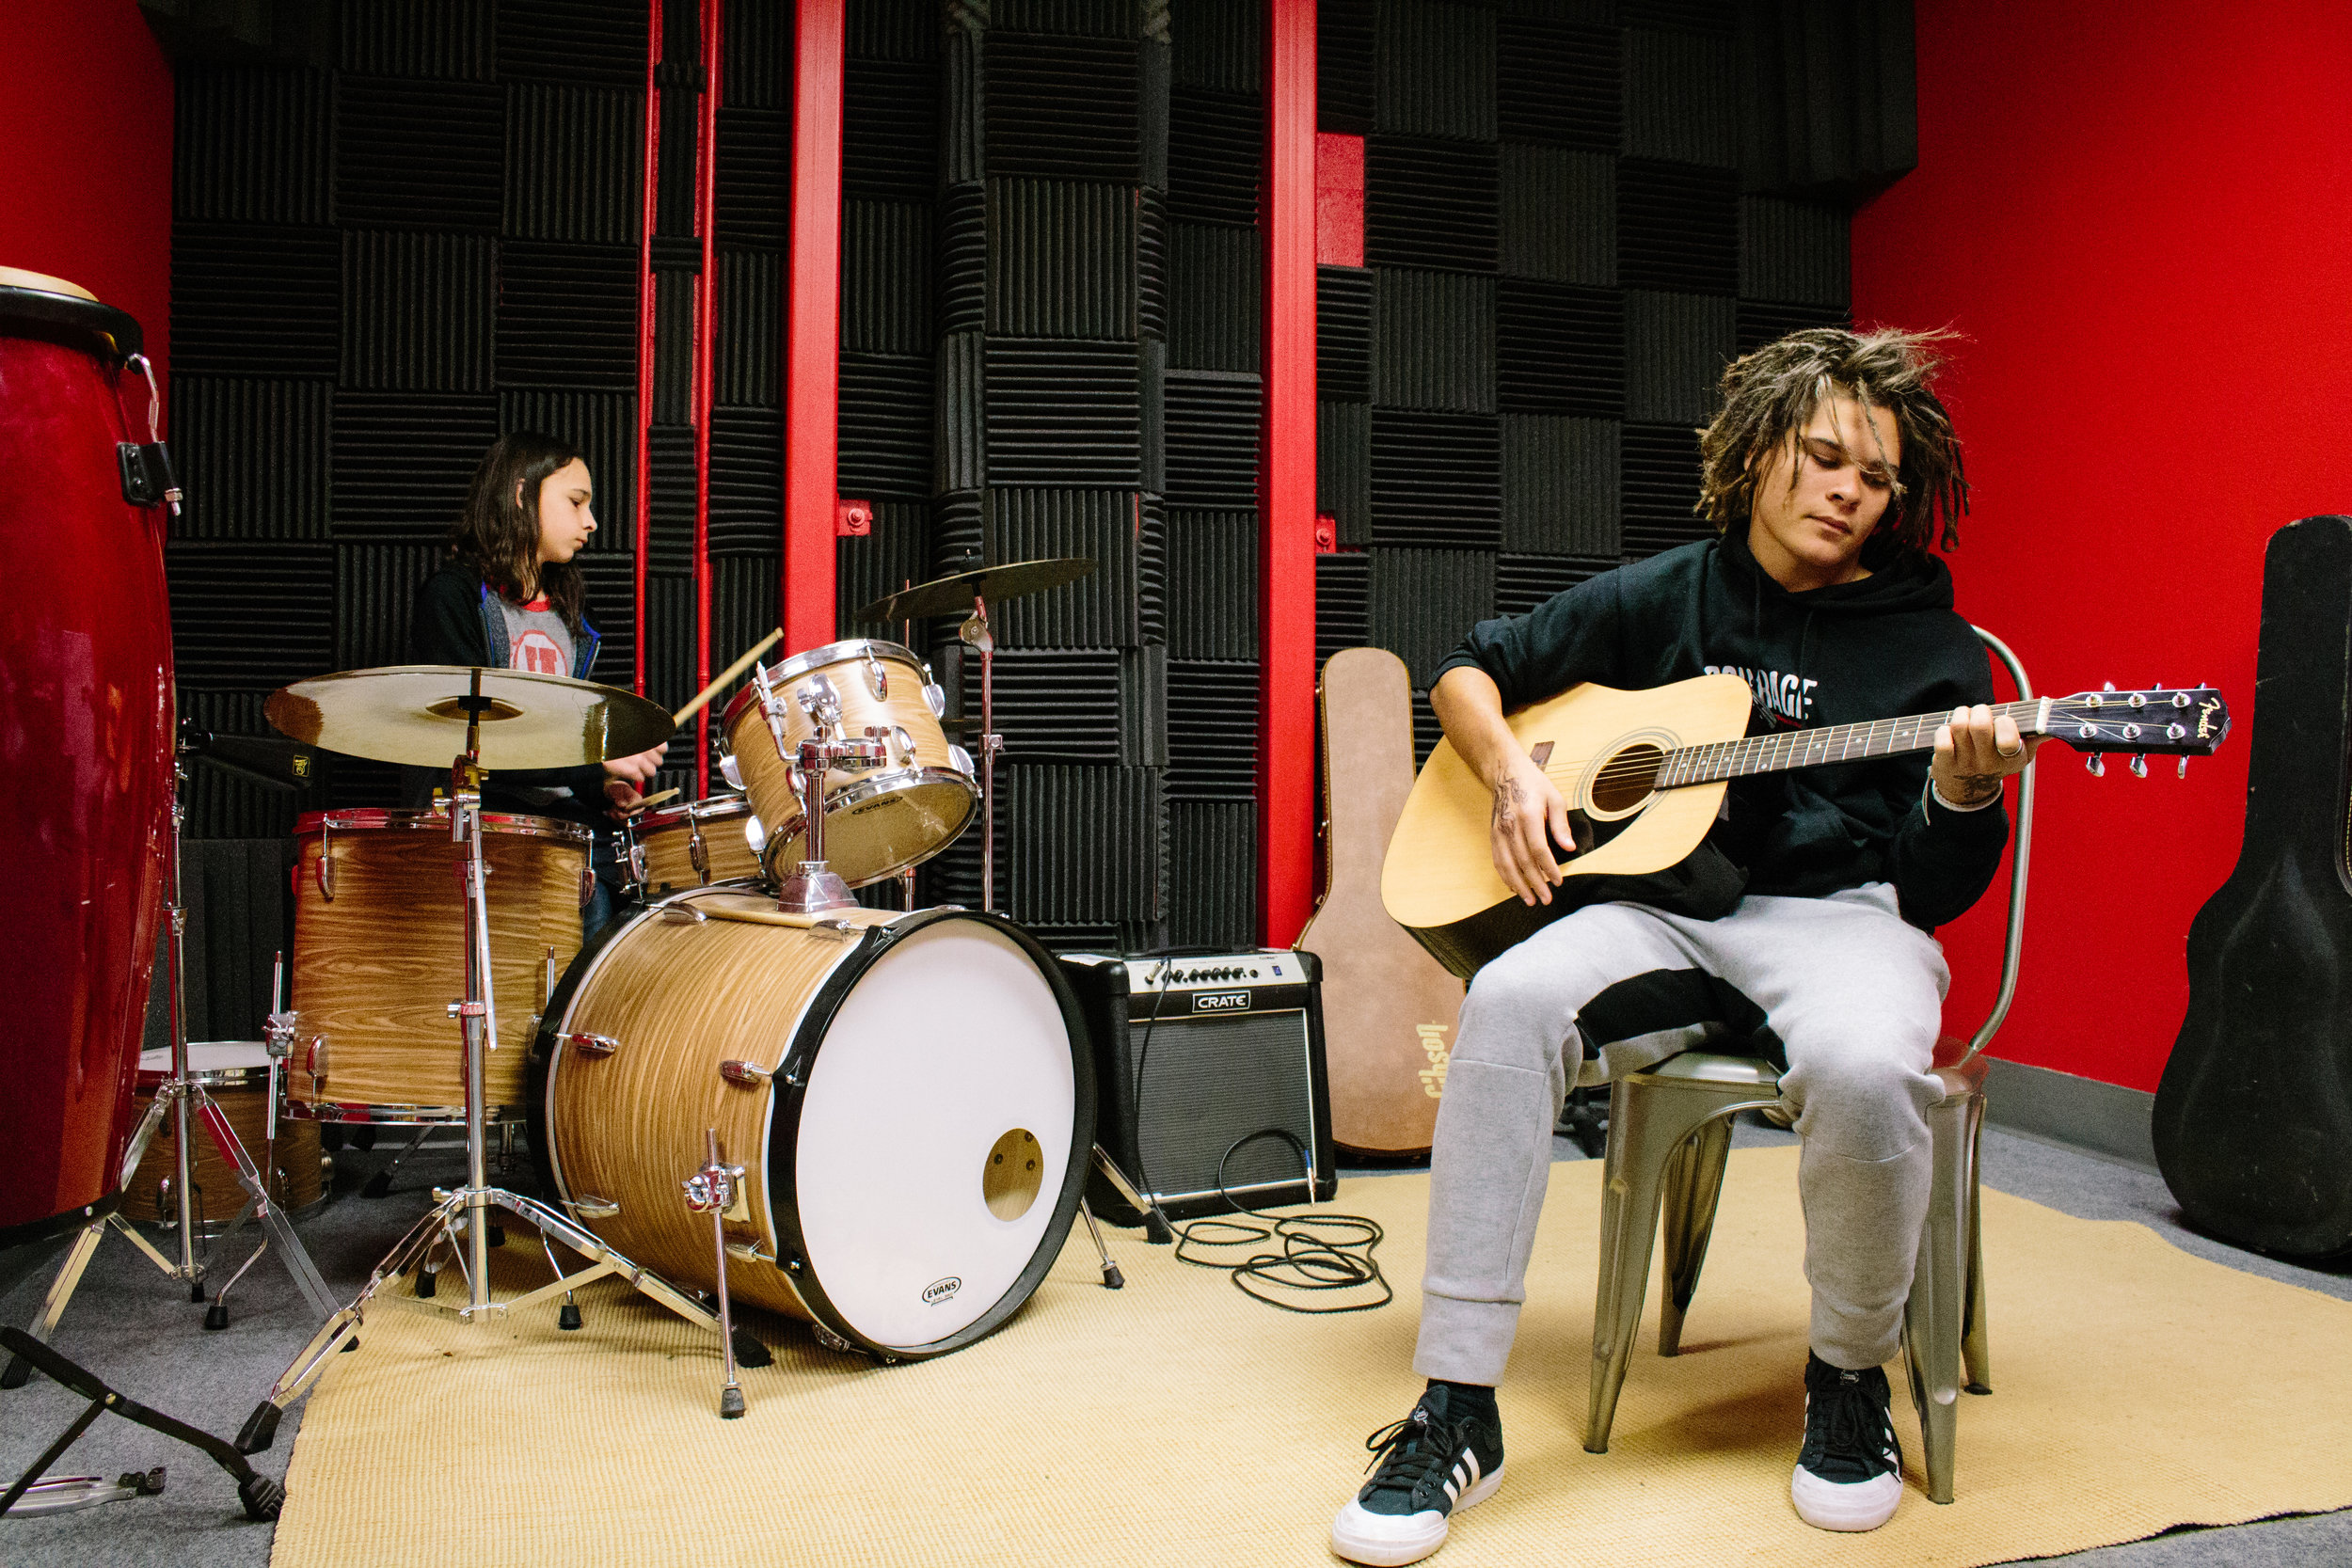 Students create and record music in One Stone's Ripple Studio.